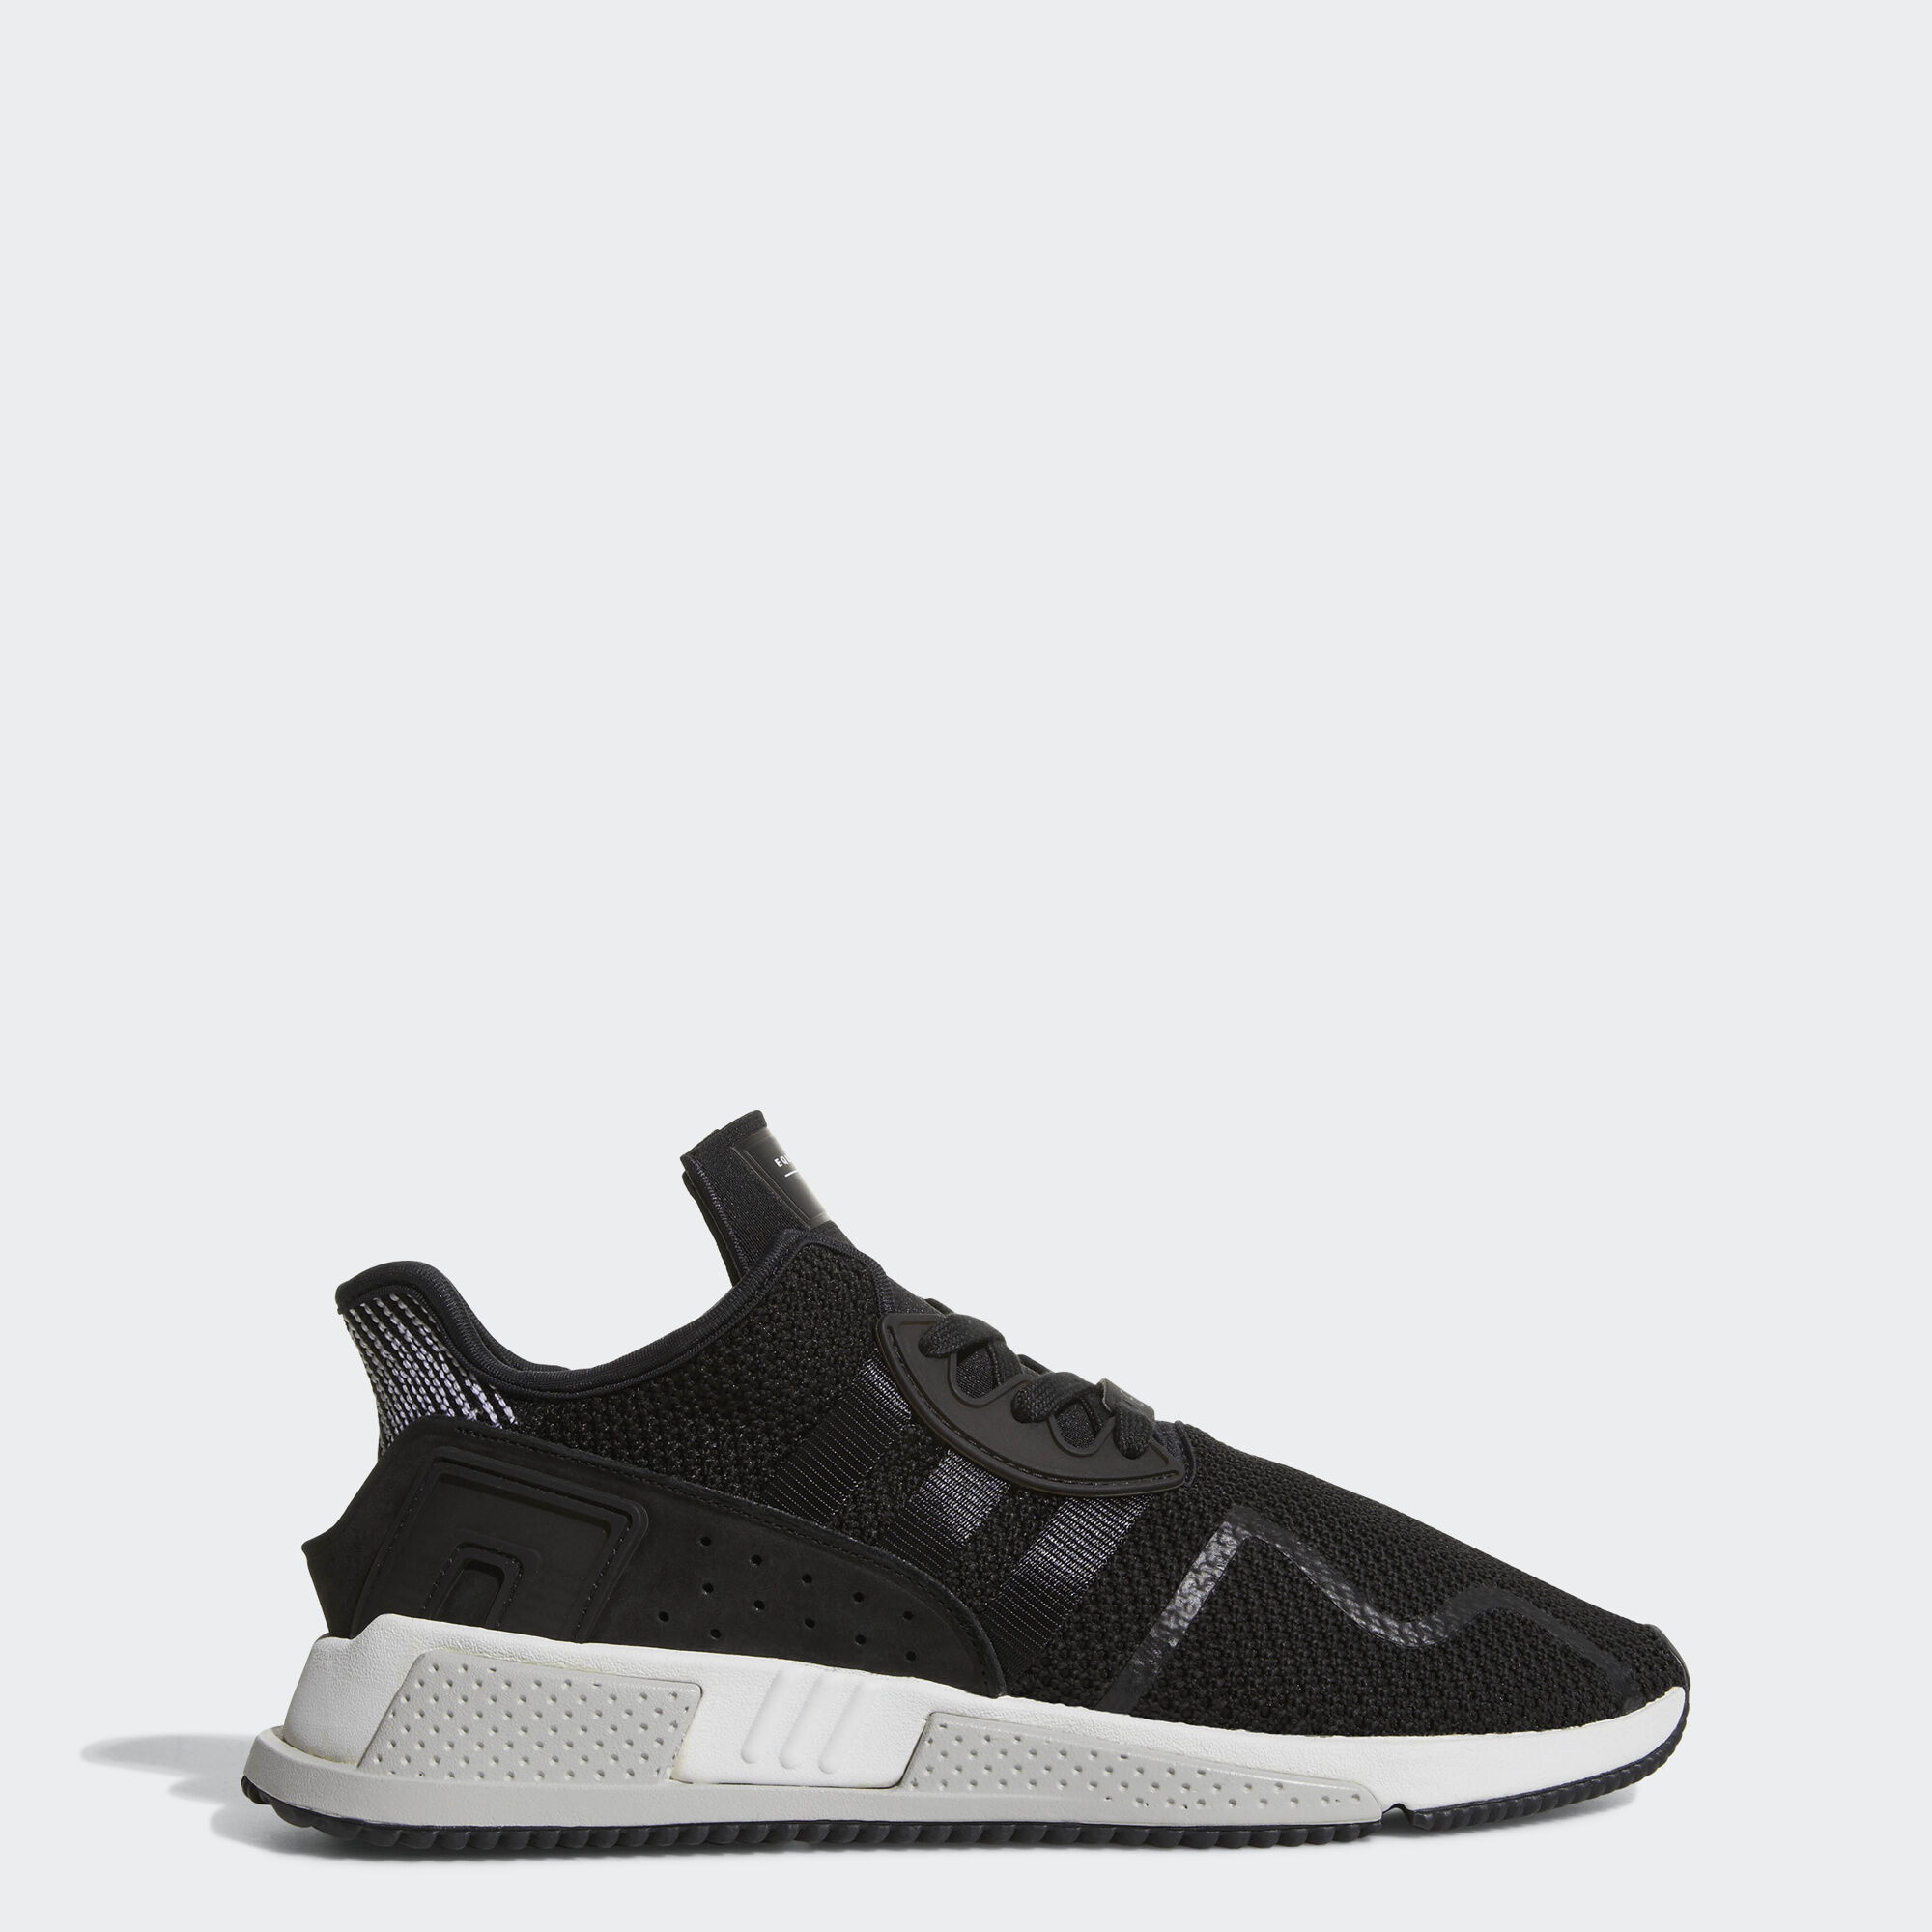 adidas can you return sale items